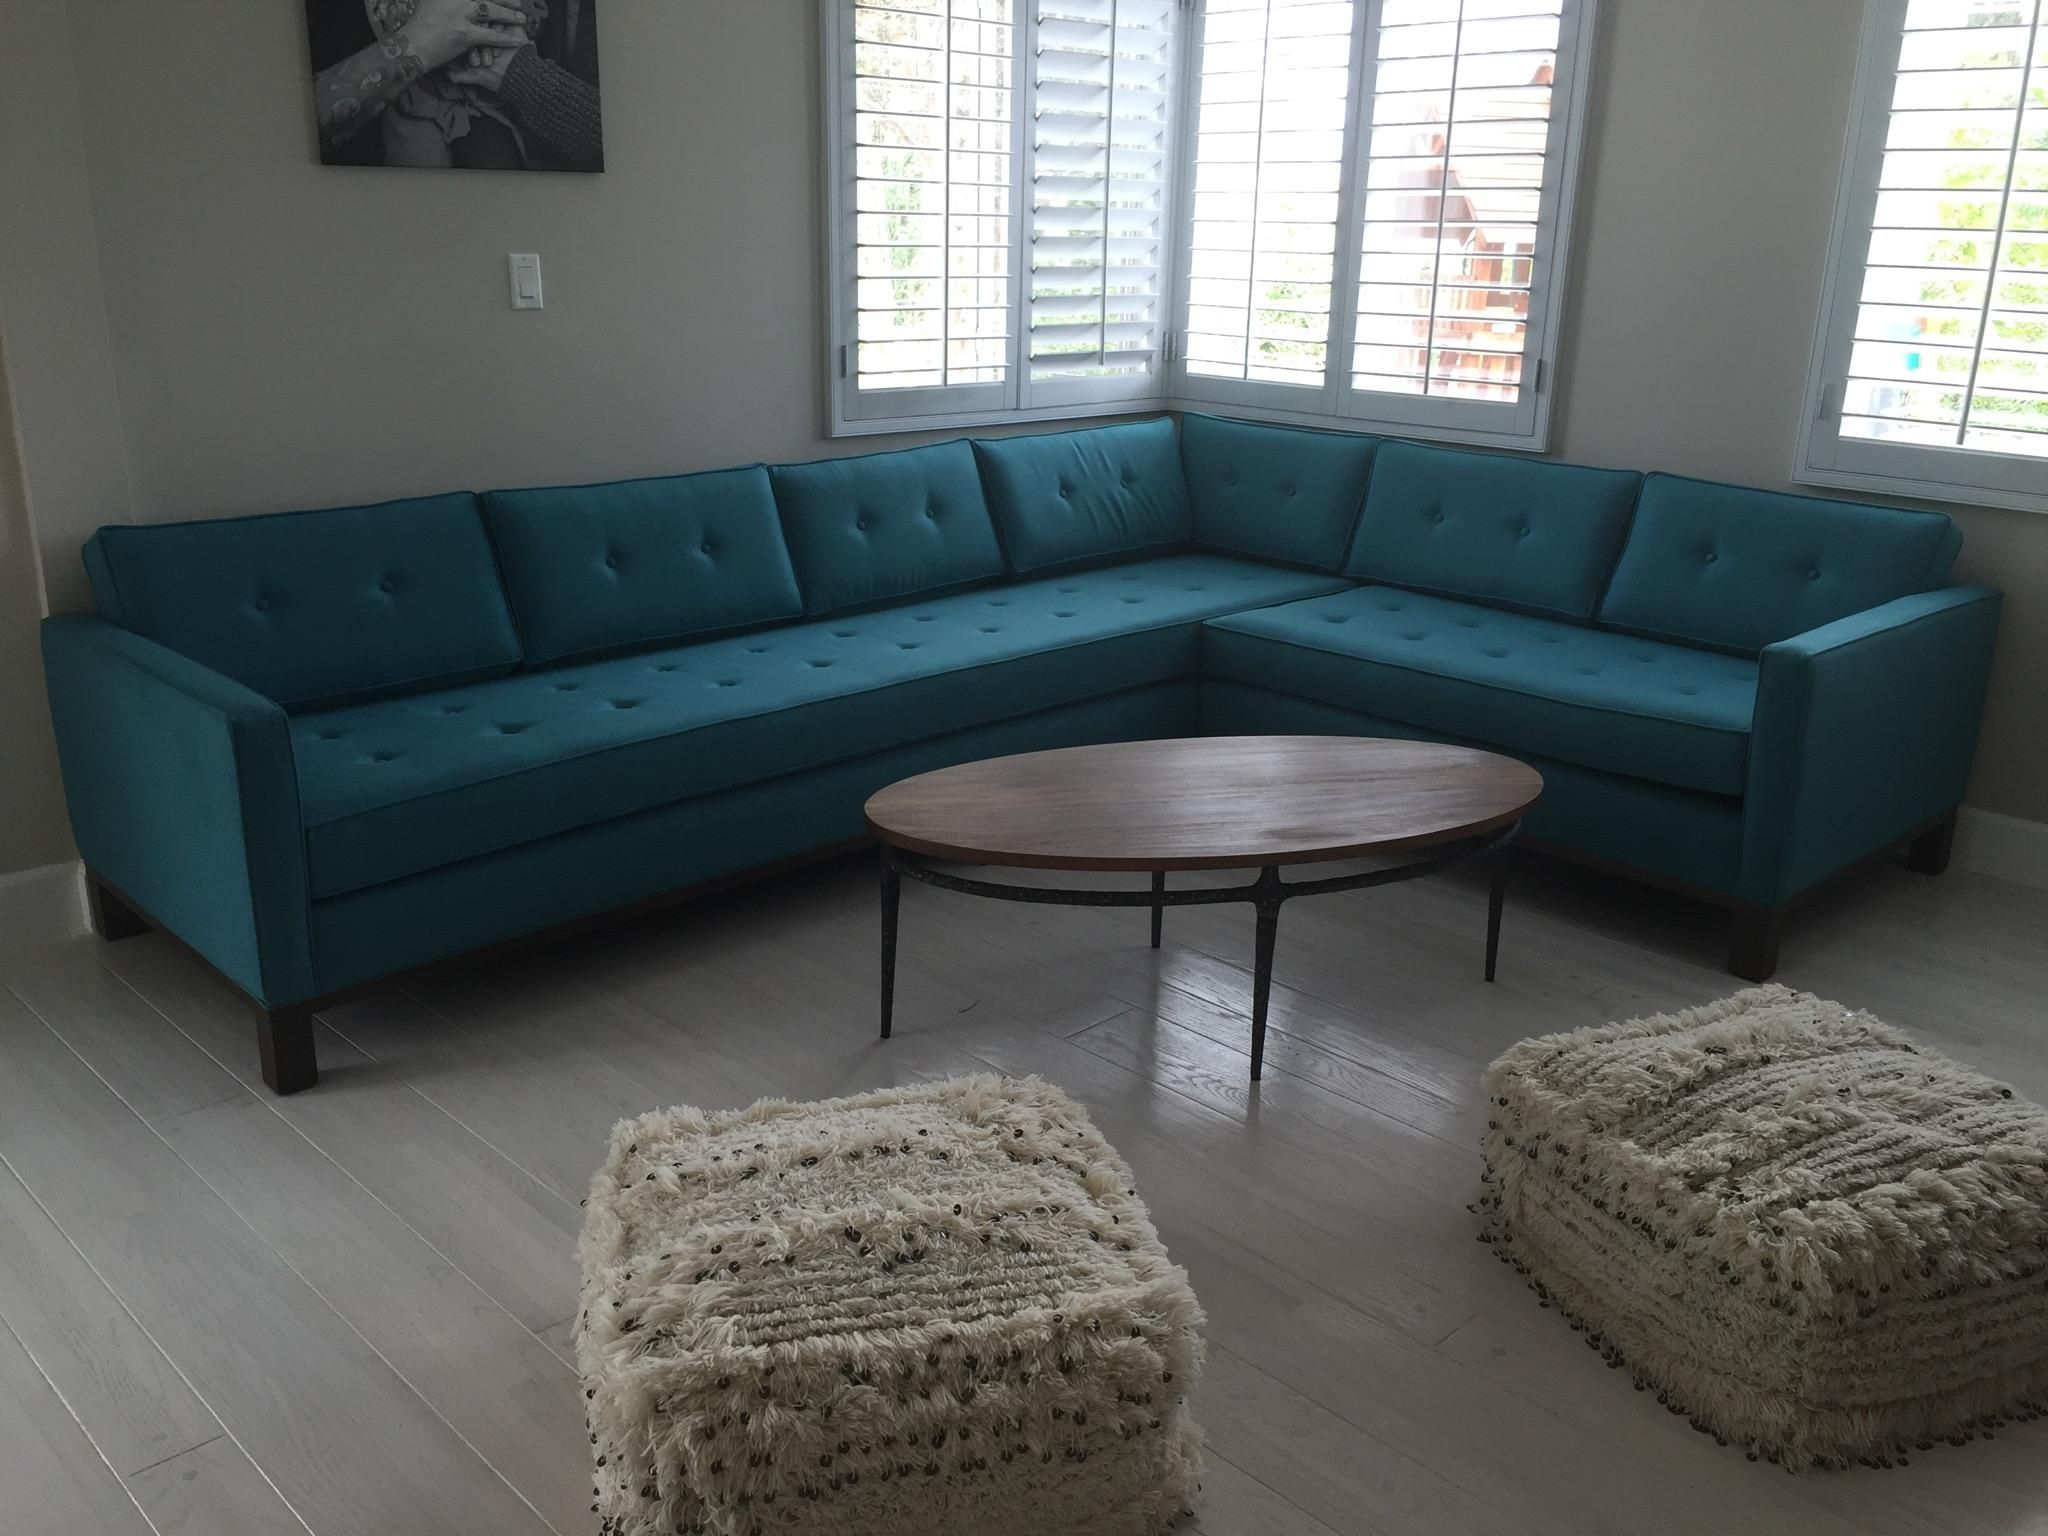 Furniture of america chaves contemporary 3 piece sofa set - Joybird Raine L Sectional 4 Piece Custom From Dawn M